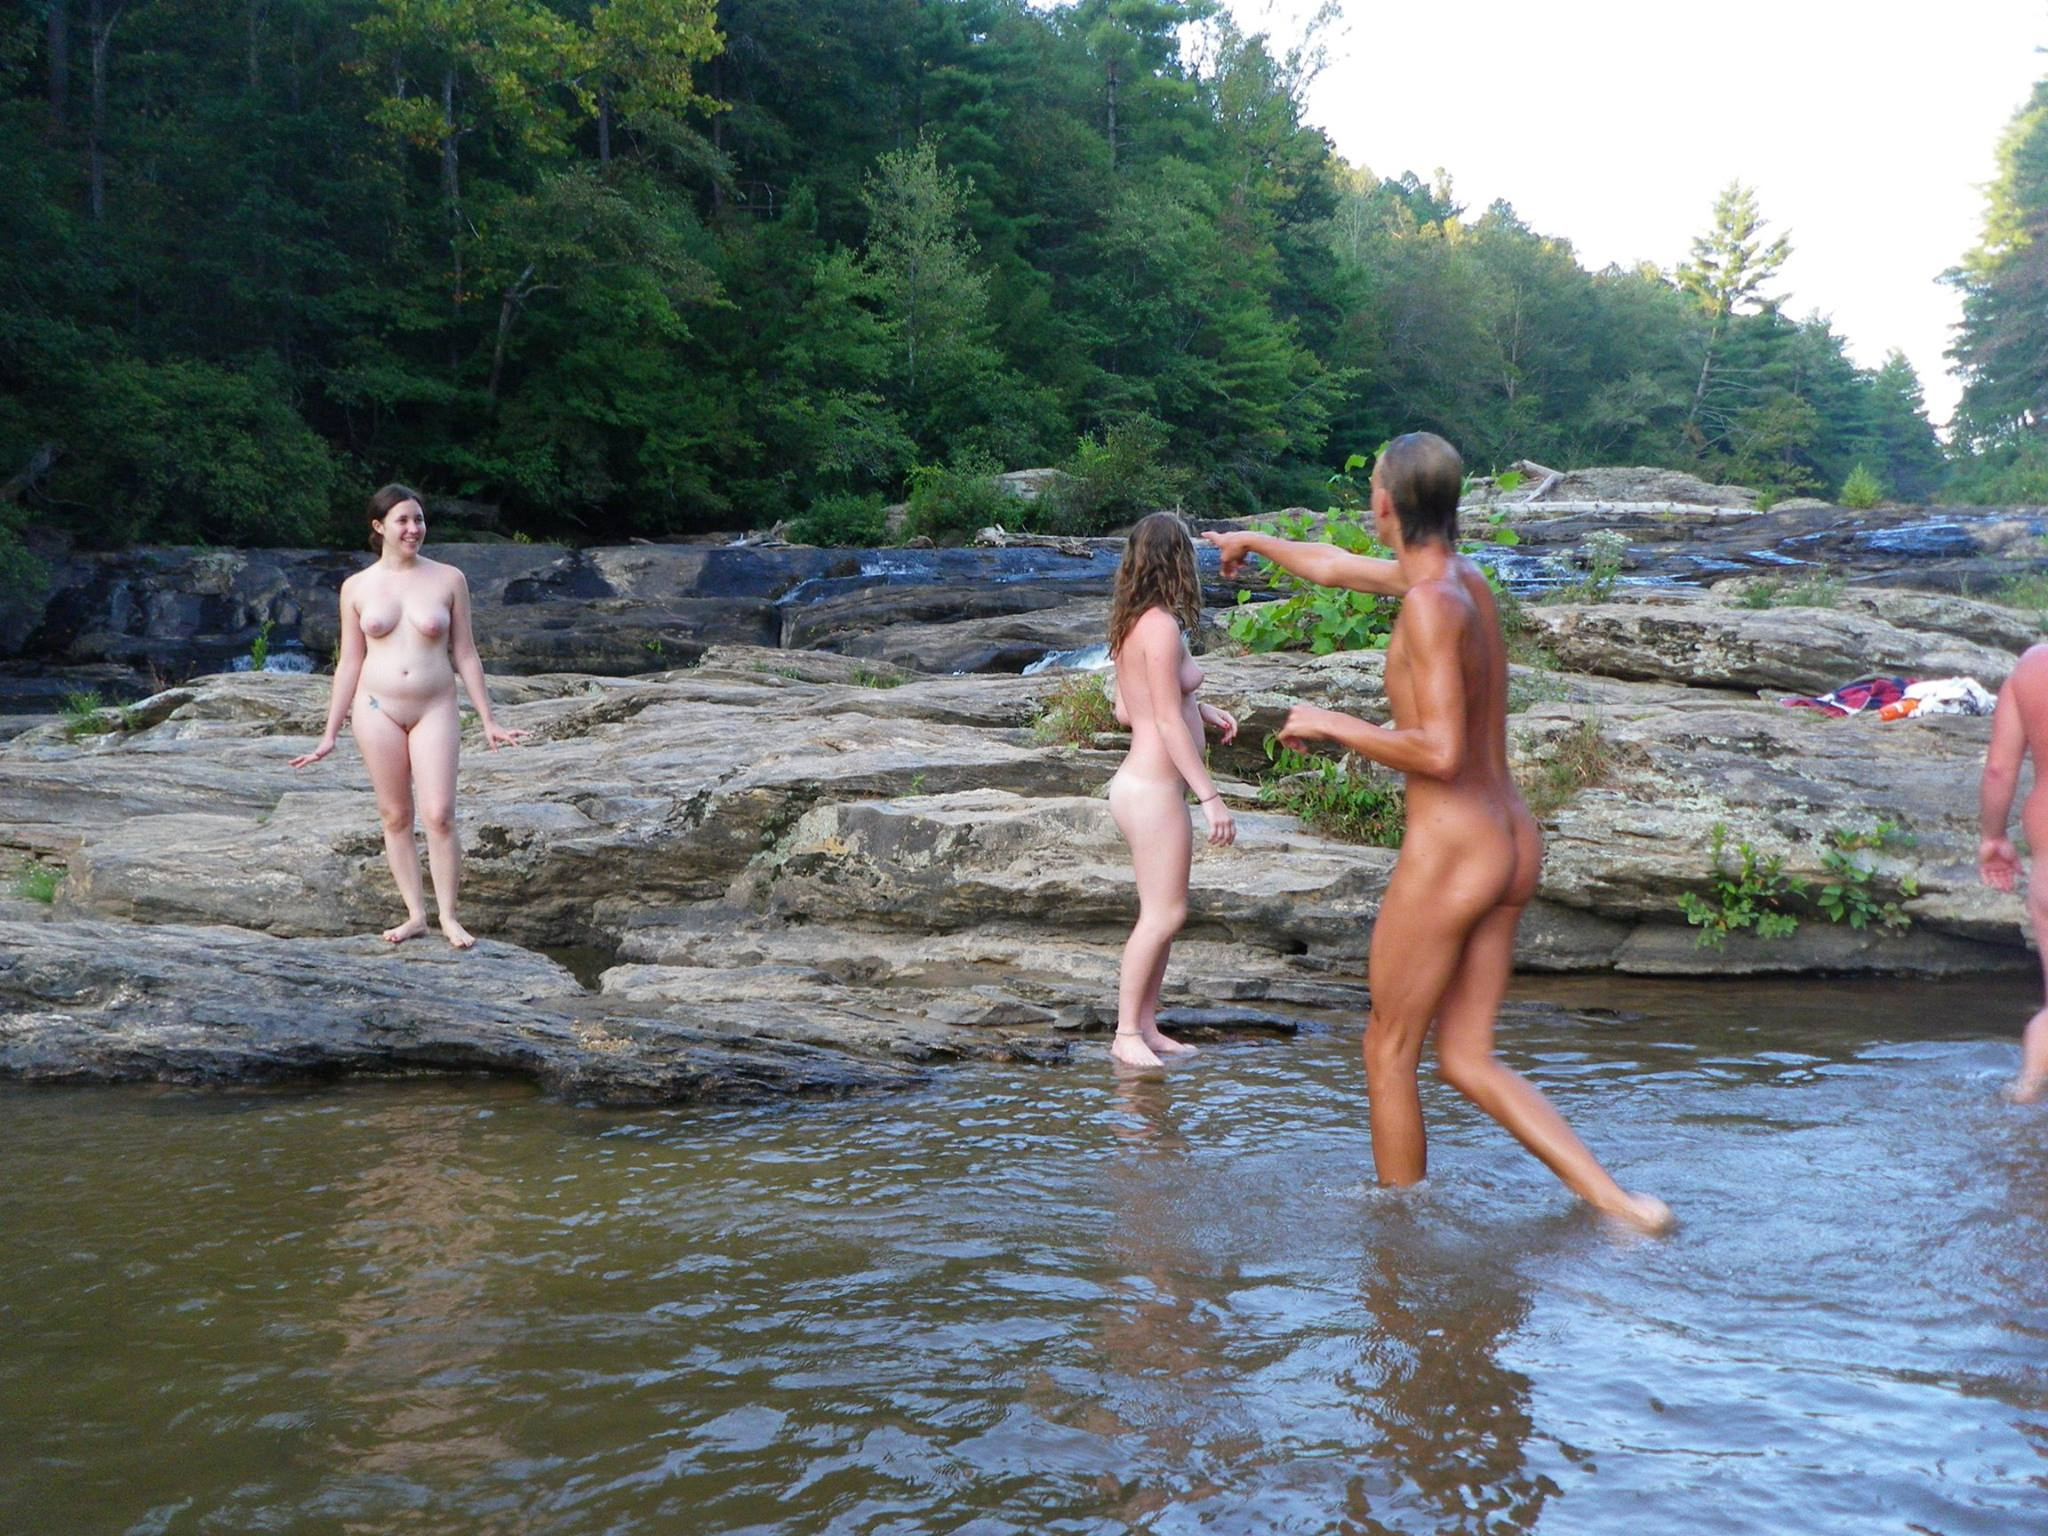 seekers-nudist-swimming-holes-missouri-girl-nude-thick